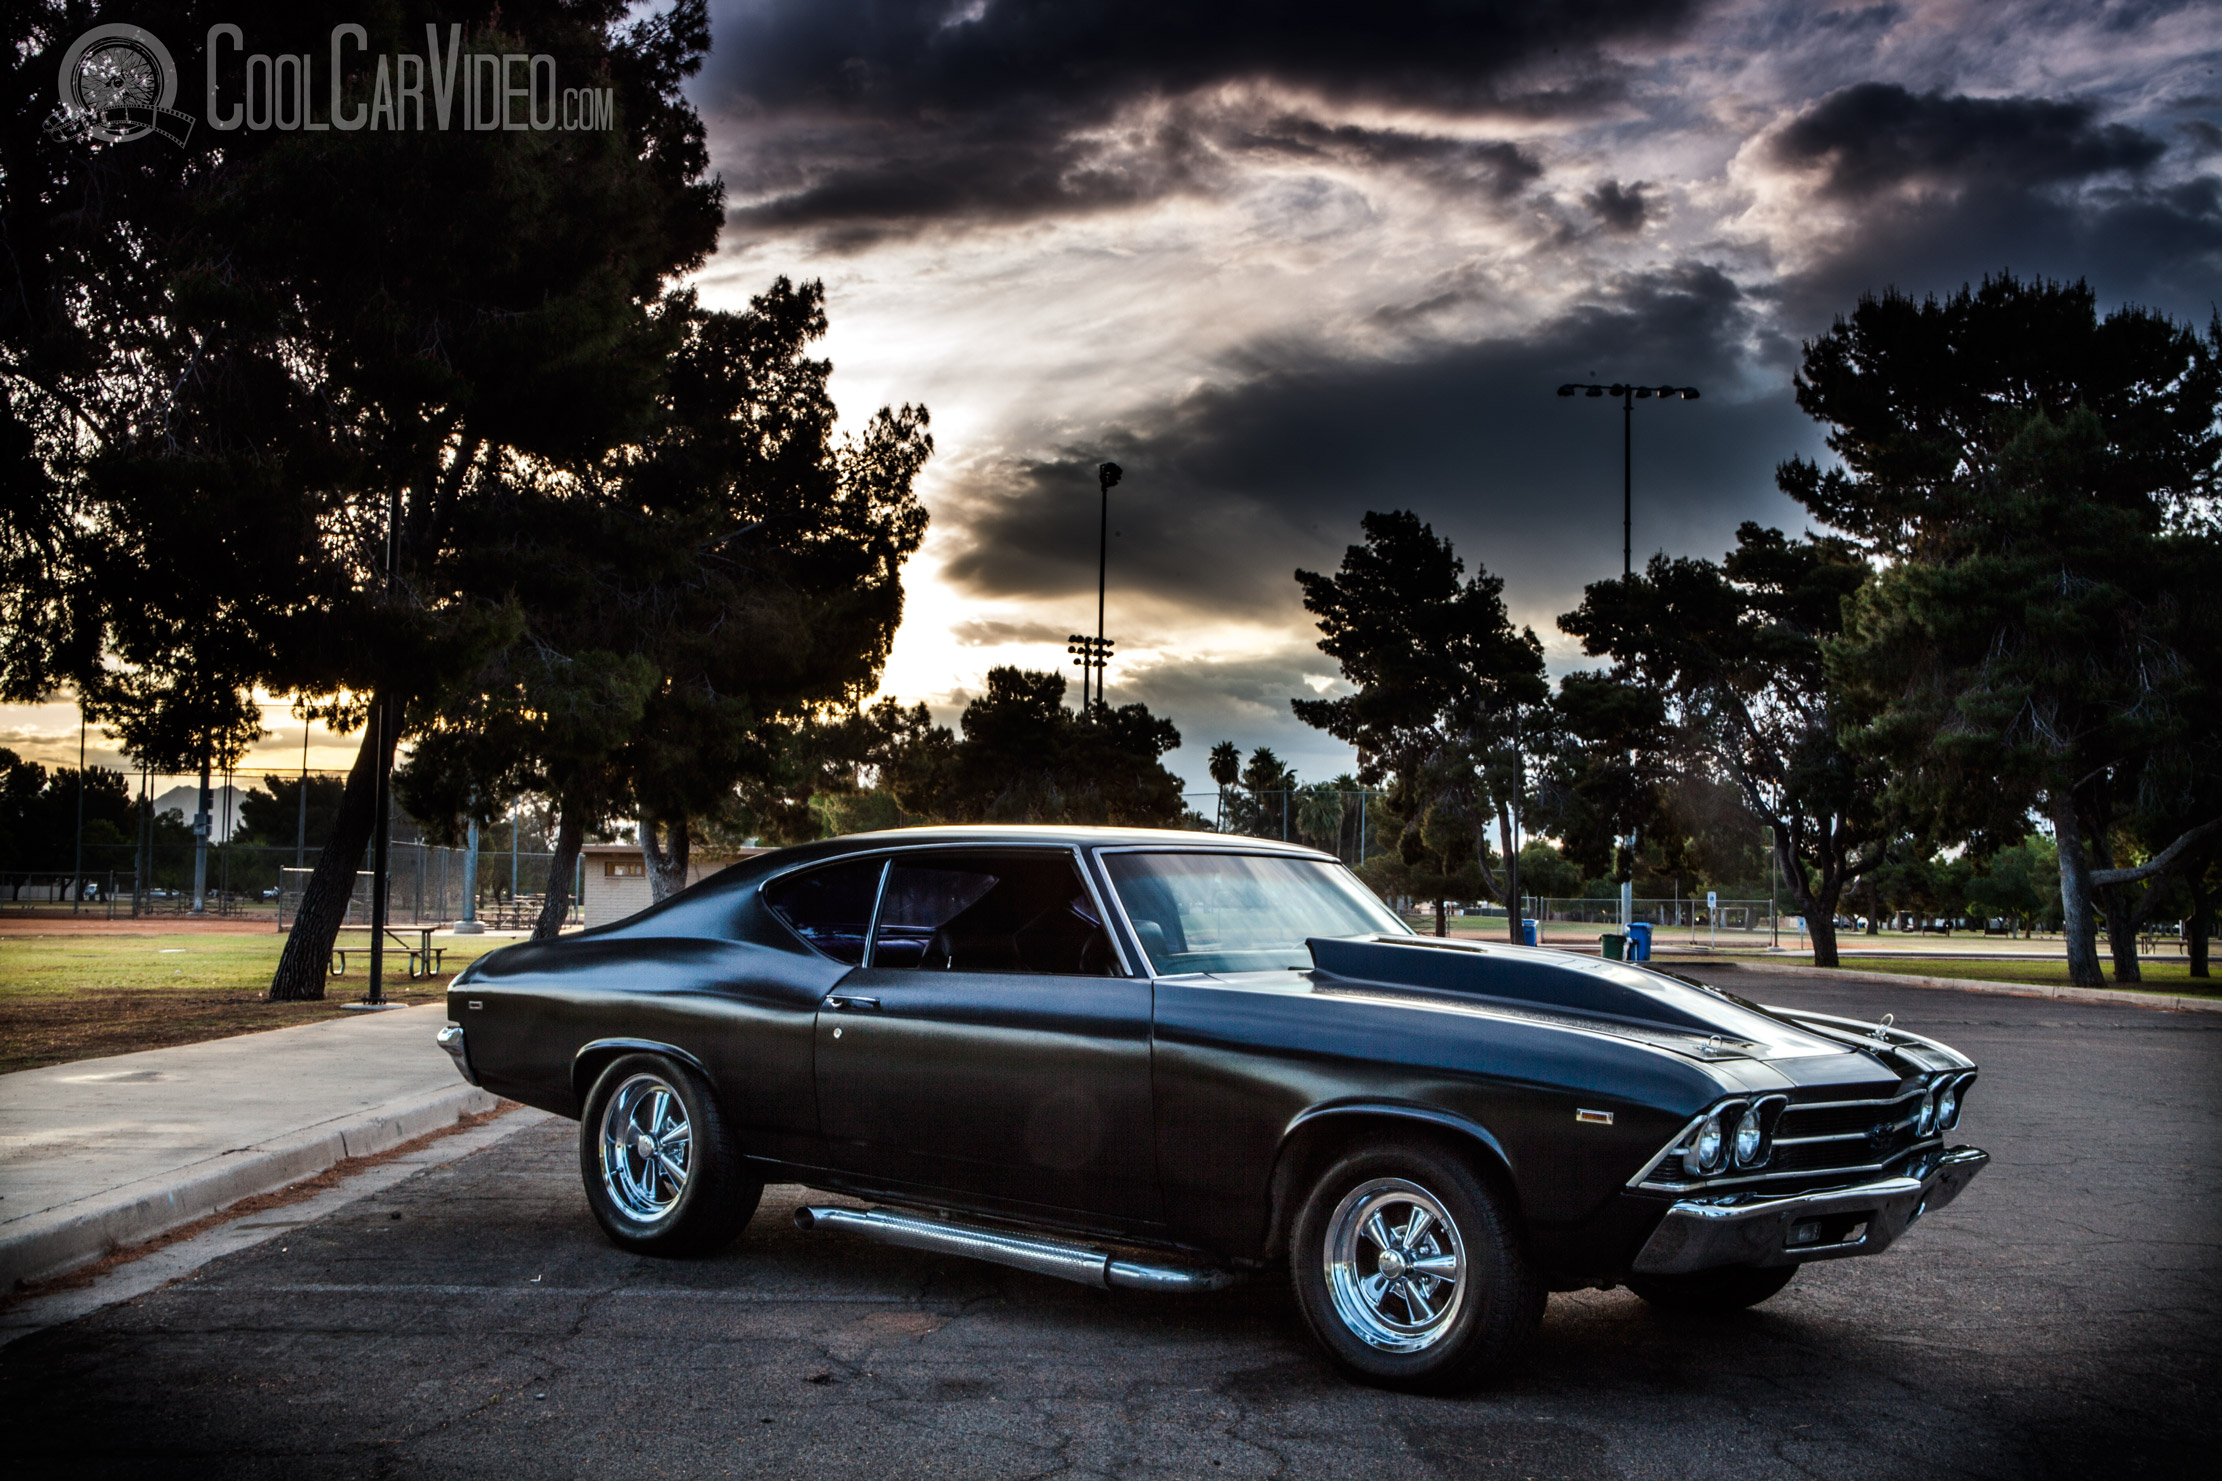 Chevrolet Ss 69 >> 69 Chevelle Wallpaper - WallpaperSafari